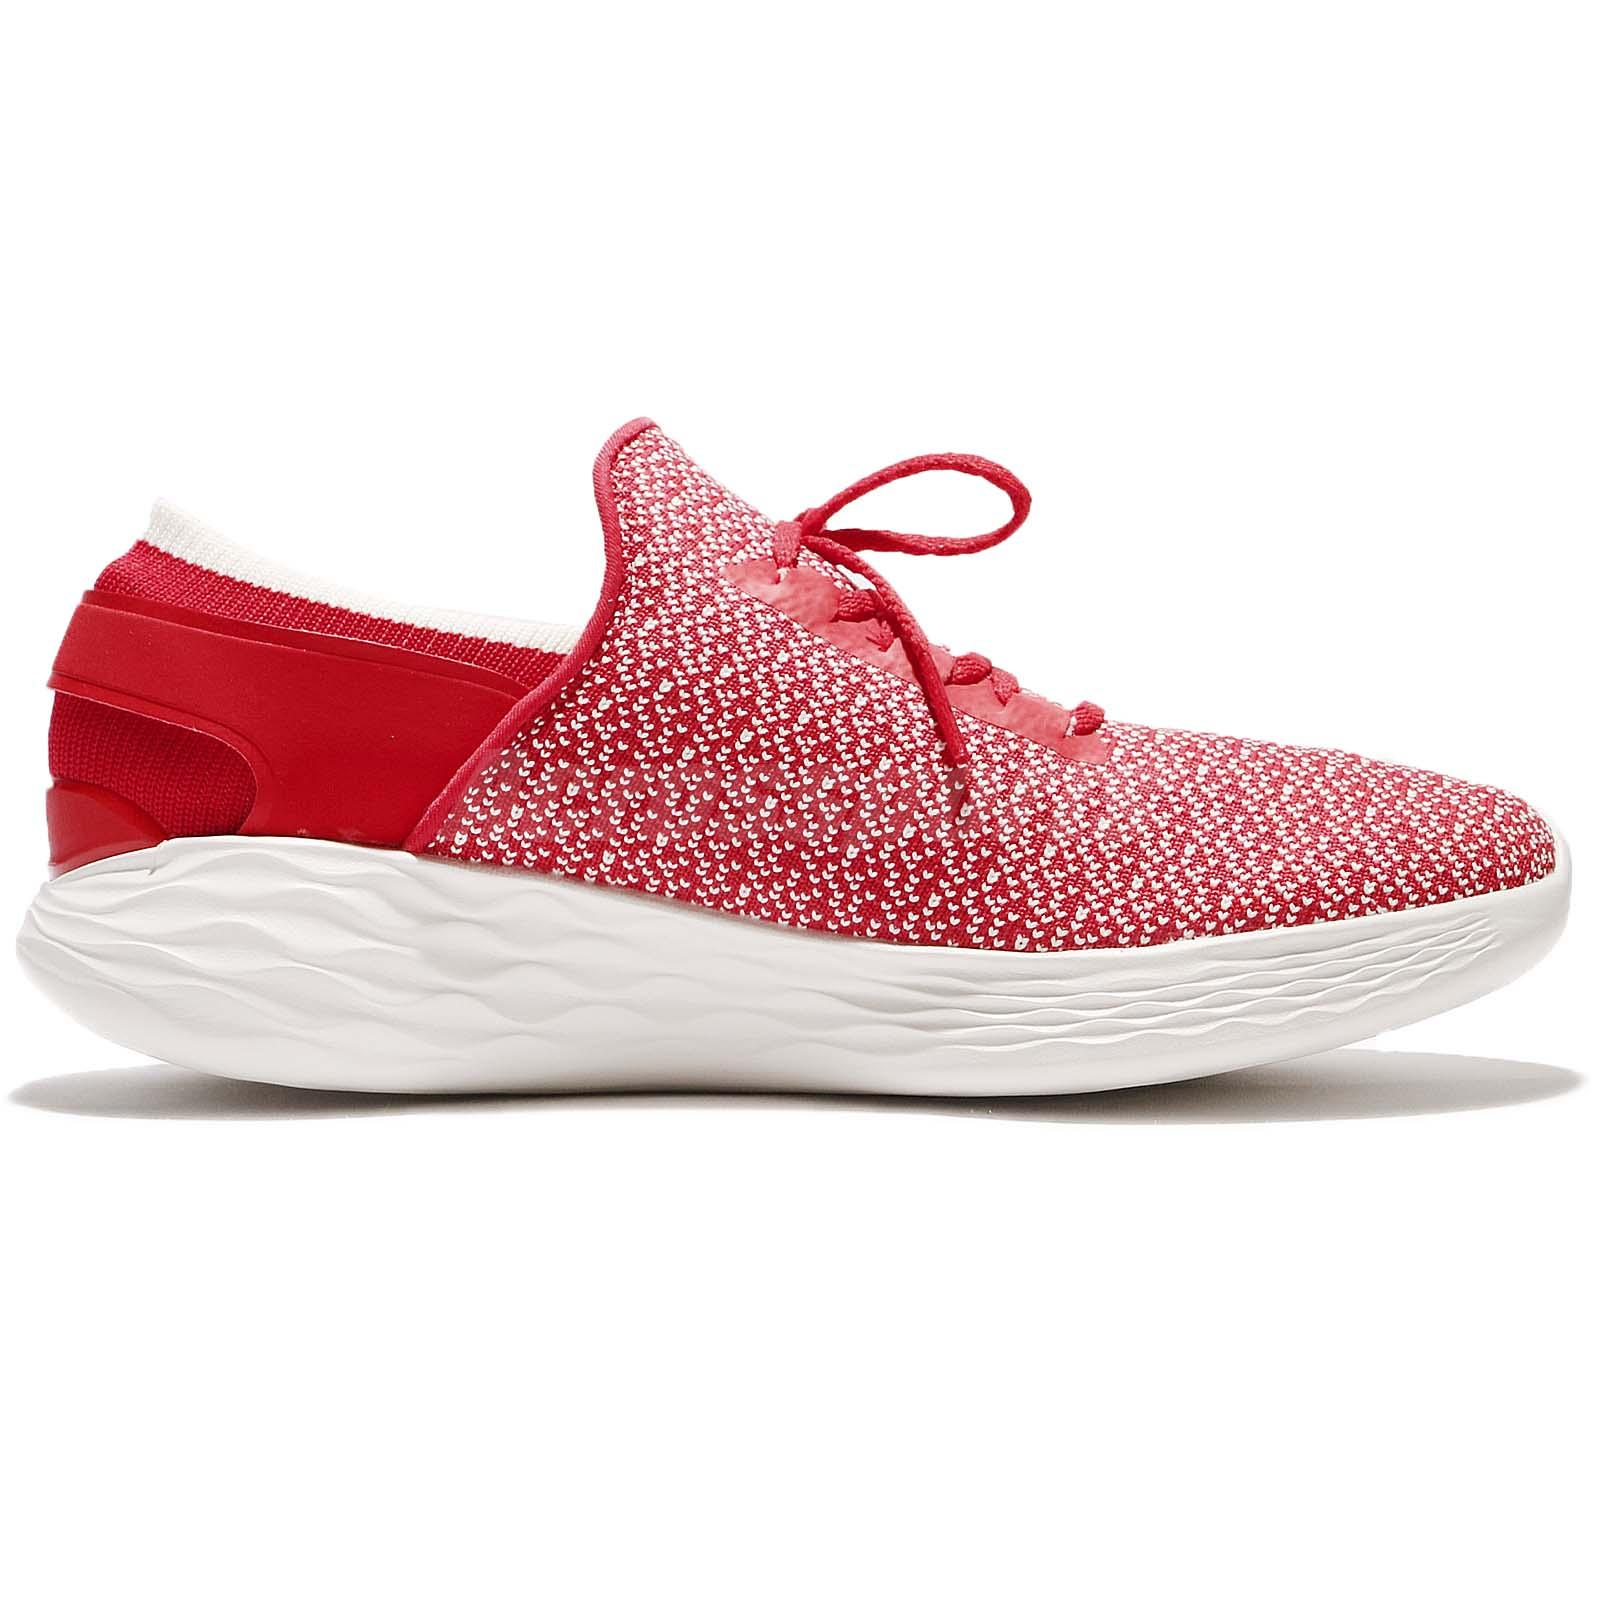 skechers 2nd take red